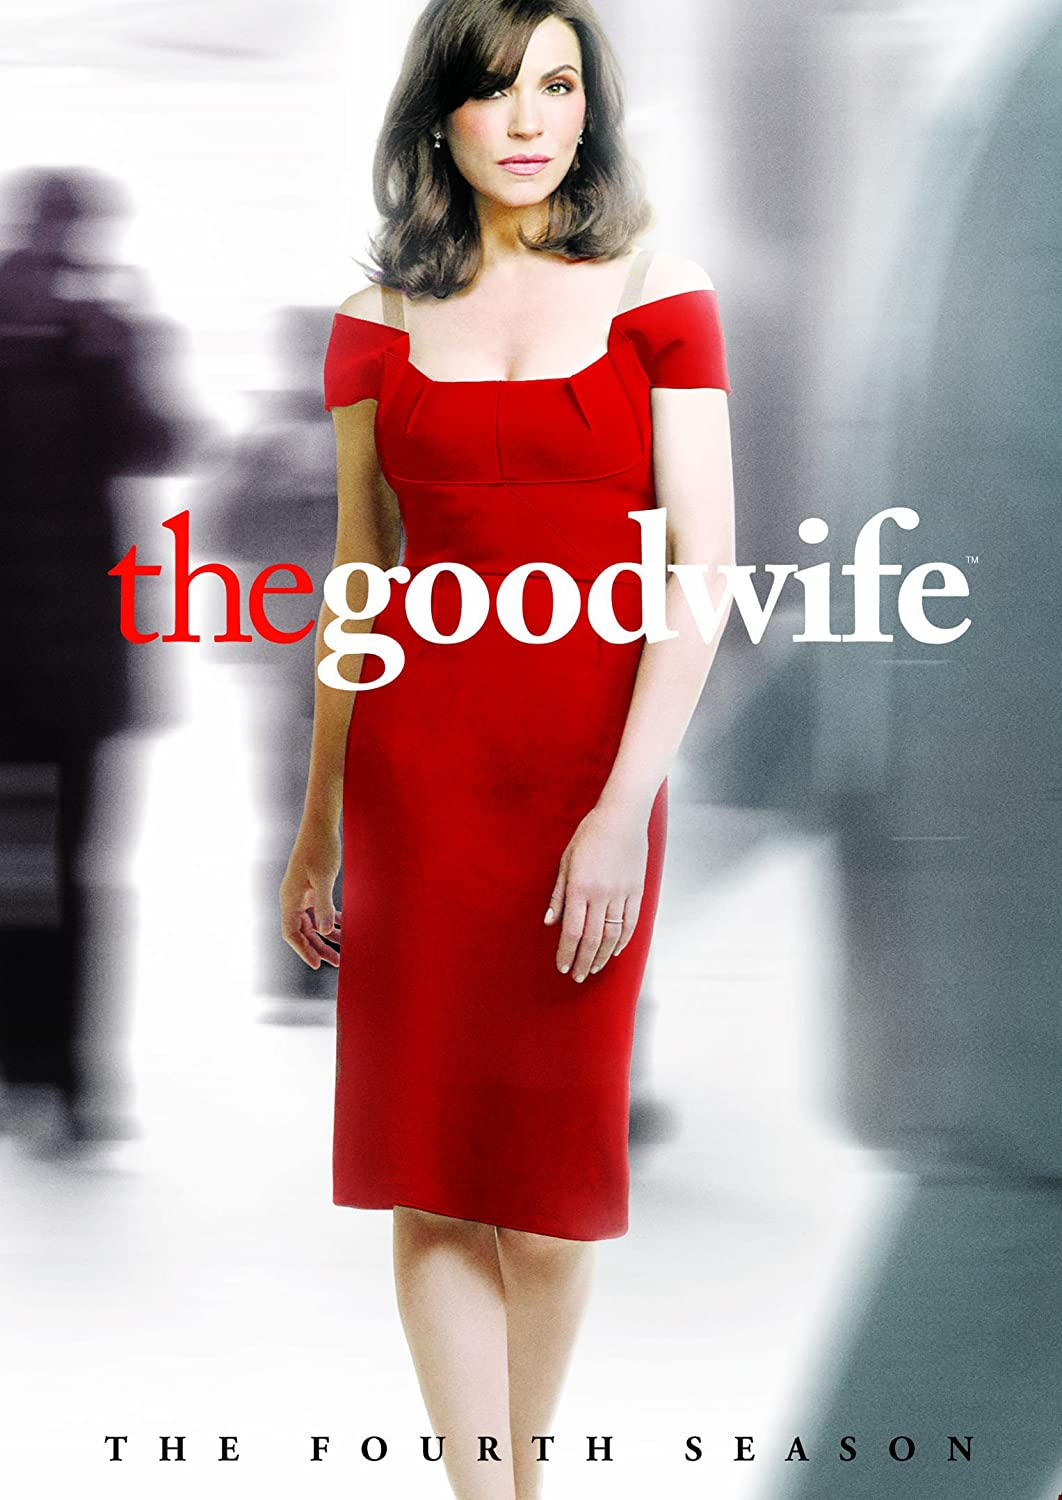 The Good Wife Season 4 Review: This Has Been Fun! – Mesh The Movie Freak